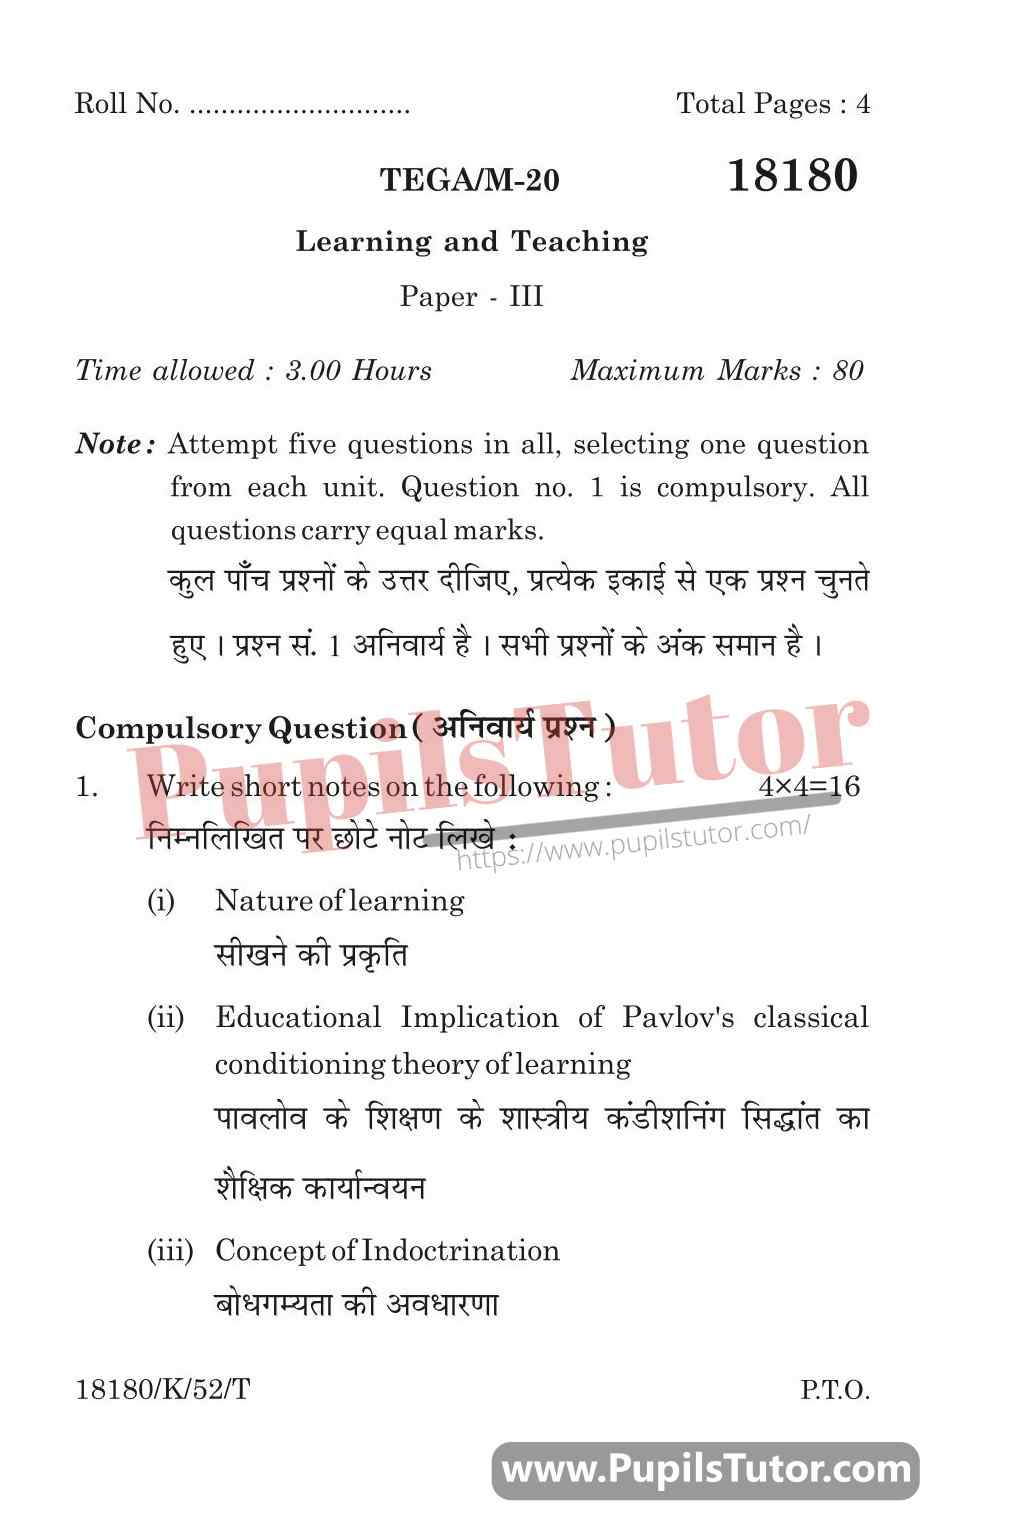 KUK (Kurukshetra University, Haryana) Learning And Teaching Question Paper 2020 For B.Ed 1st And 2nd Year And All The 4 Semesters In English And Hindi Medium Free Download PDF - Page 1 - Pupils Tutor